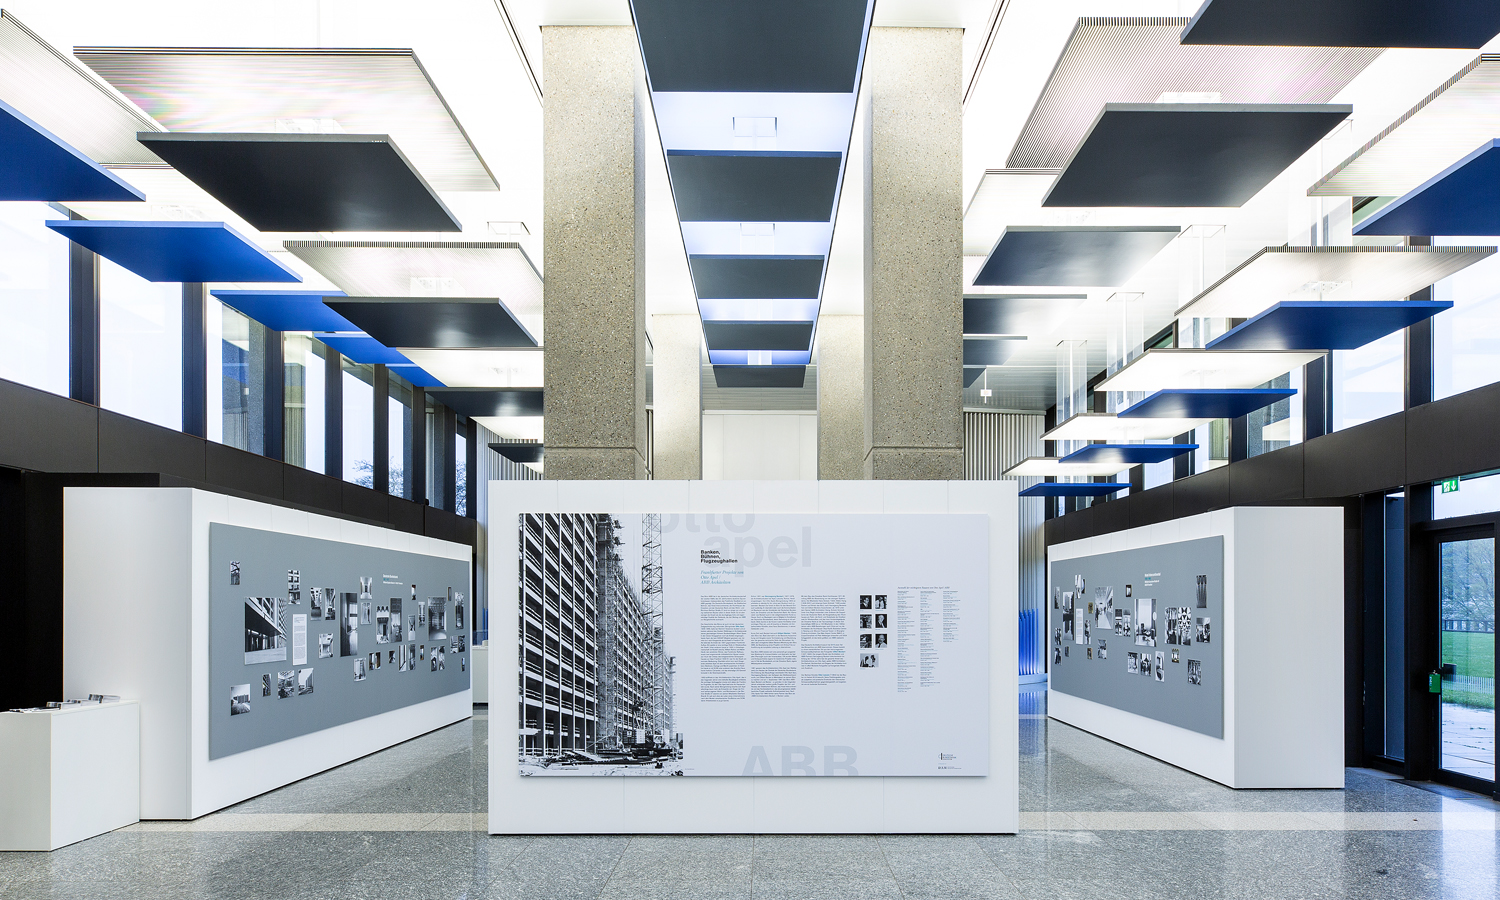 Mila-wall wall modules in the Deutsche Bundesbank in Frankfurt